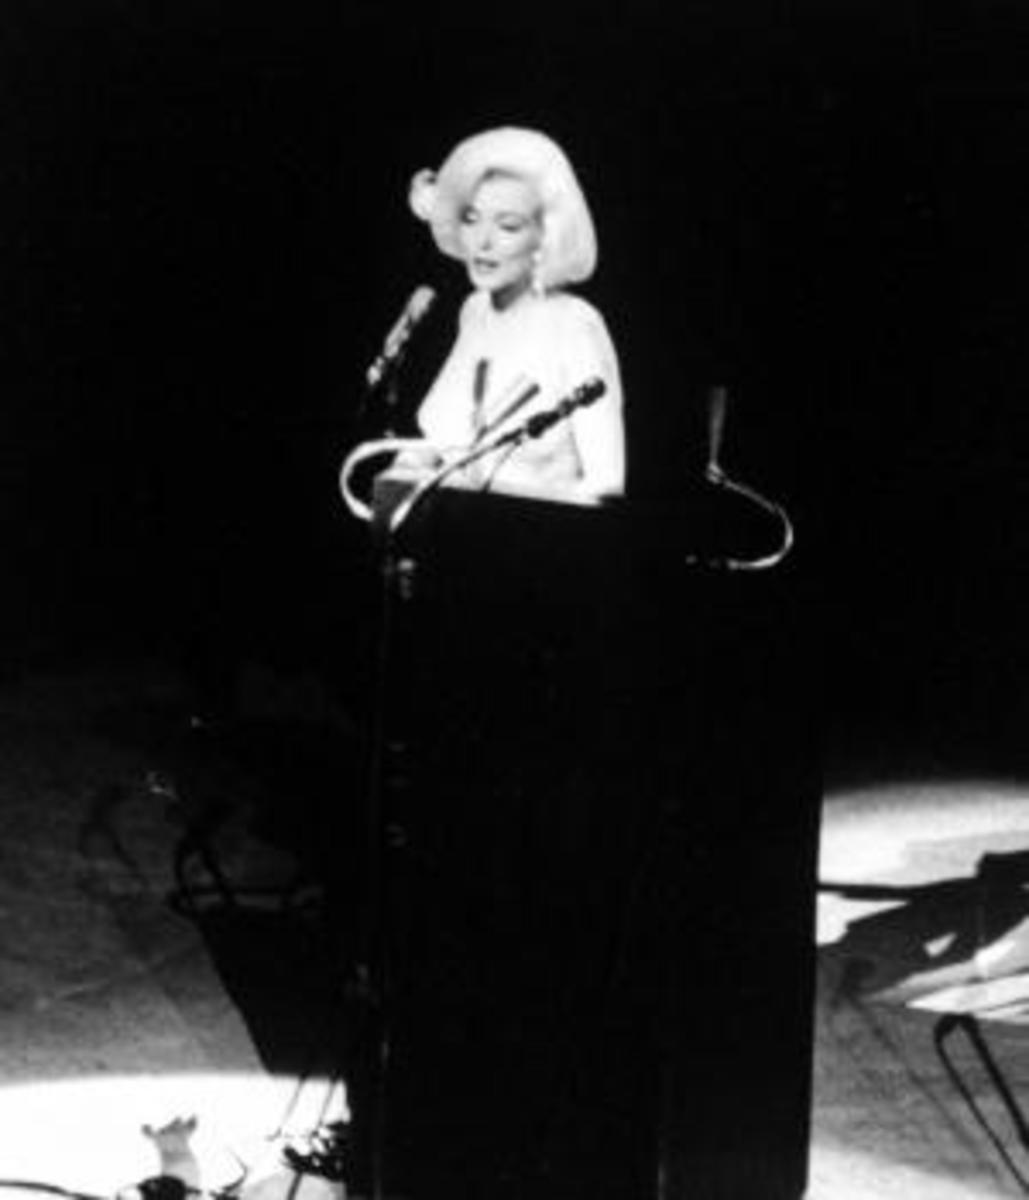 """Marilyn Monroe sings """"Happy Birthday"""" to Kennedy on May 19, 1962. (Credit: Yale Joel/Life Magazine/Time & Life Pictures/Getty Images)"""